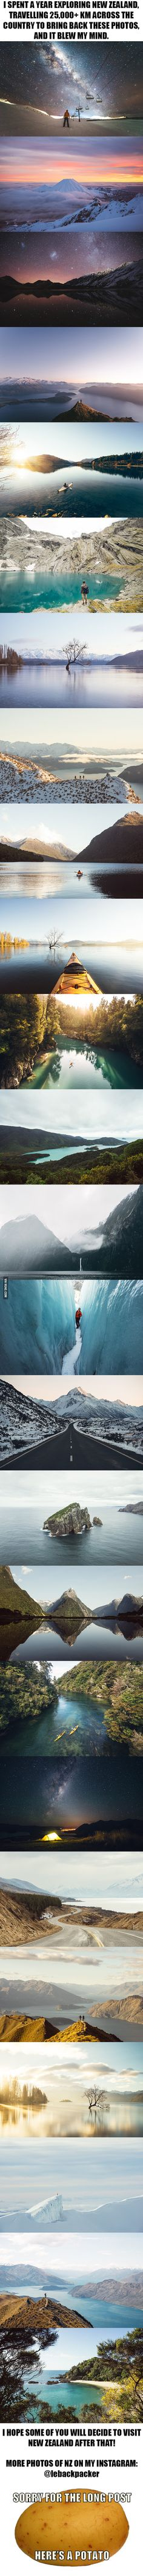 It´s so beautiful, I´m crying T^T -  I spent 365 days photographing New Zealand and it blew my mind. - 9GAG